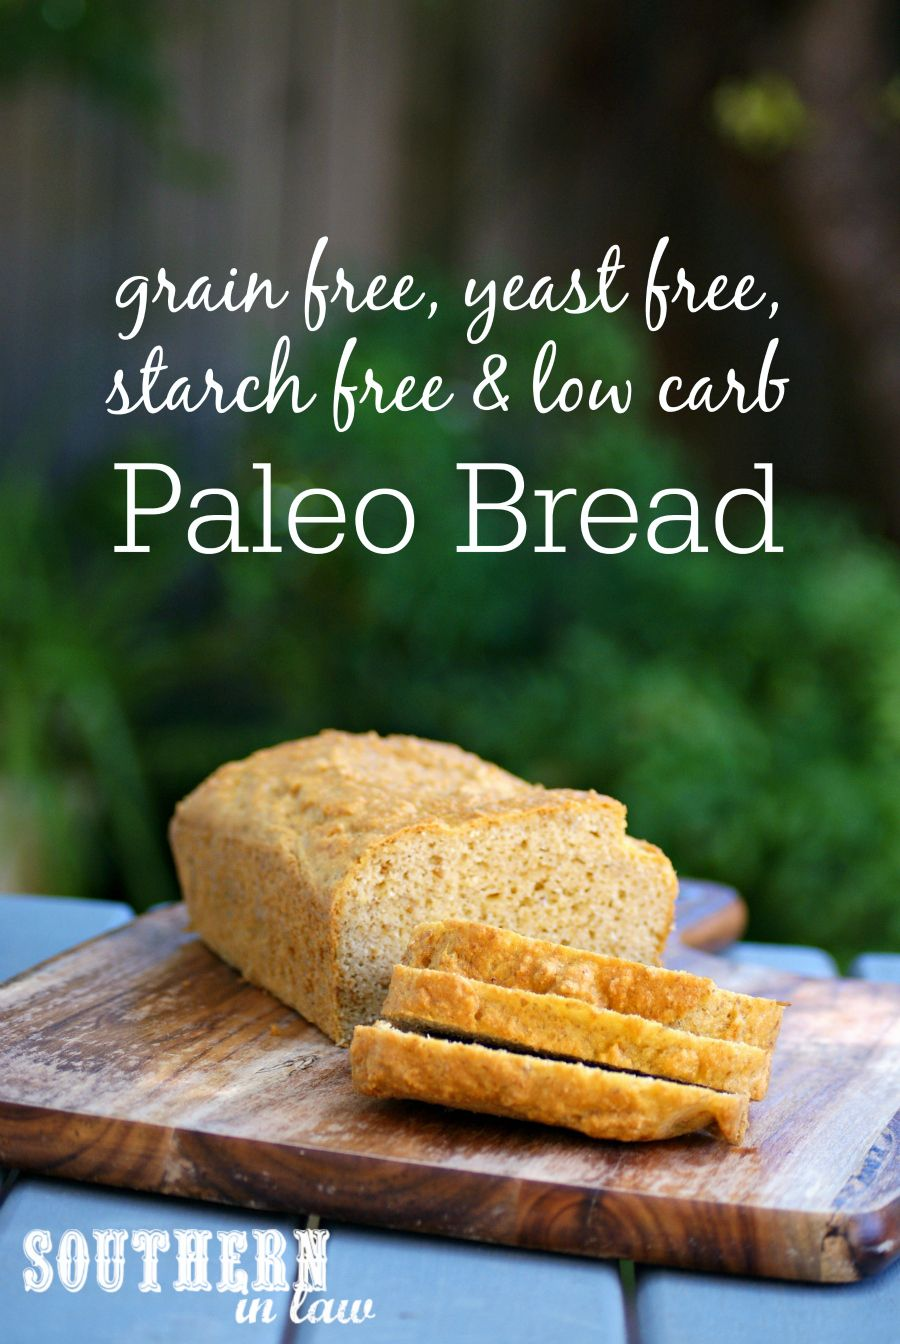 Recipe Starch Yeast Grain Free Paleo Bread Yeast Free Recipes Yeast Free Breads Dairy Free Bread